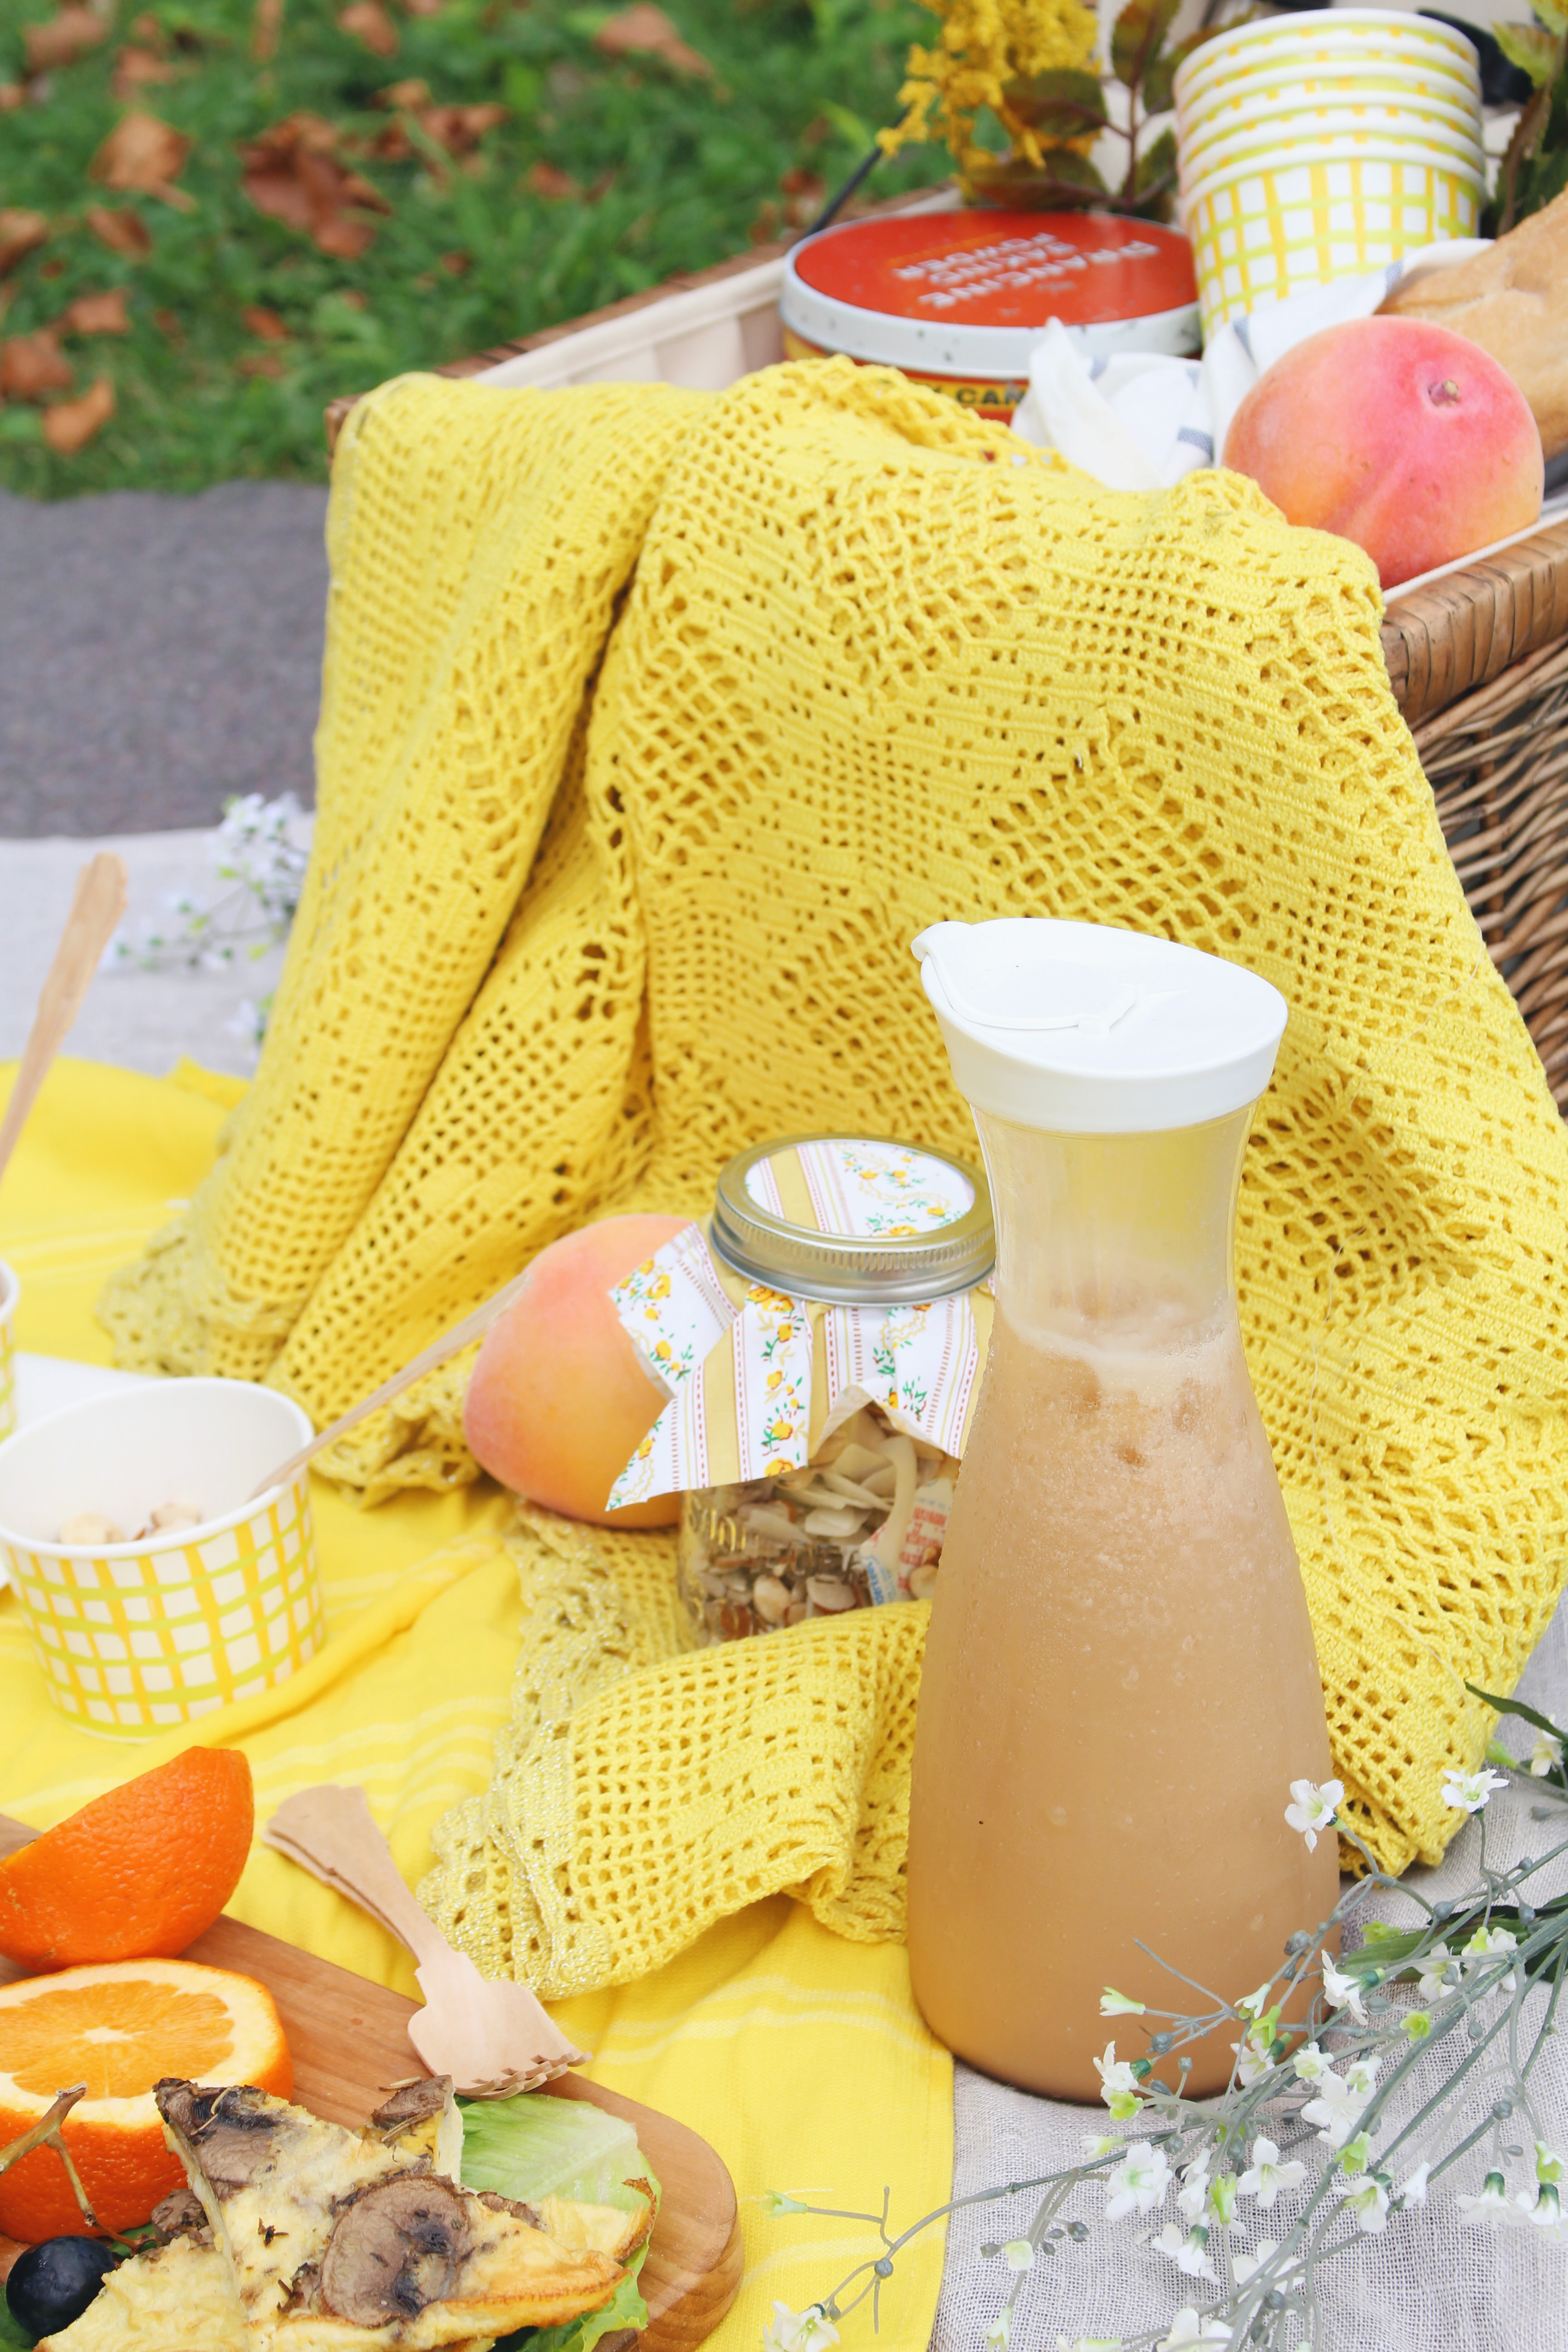 Hygge in the Spring: 6 Ways To Stay Cozy in Warmer Months; Go on a Picnic!